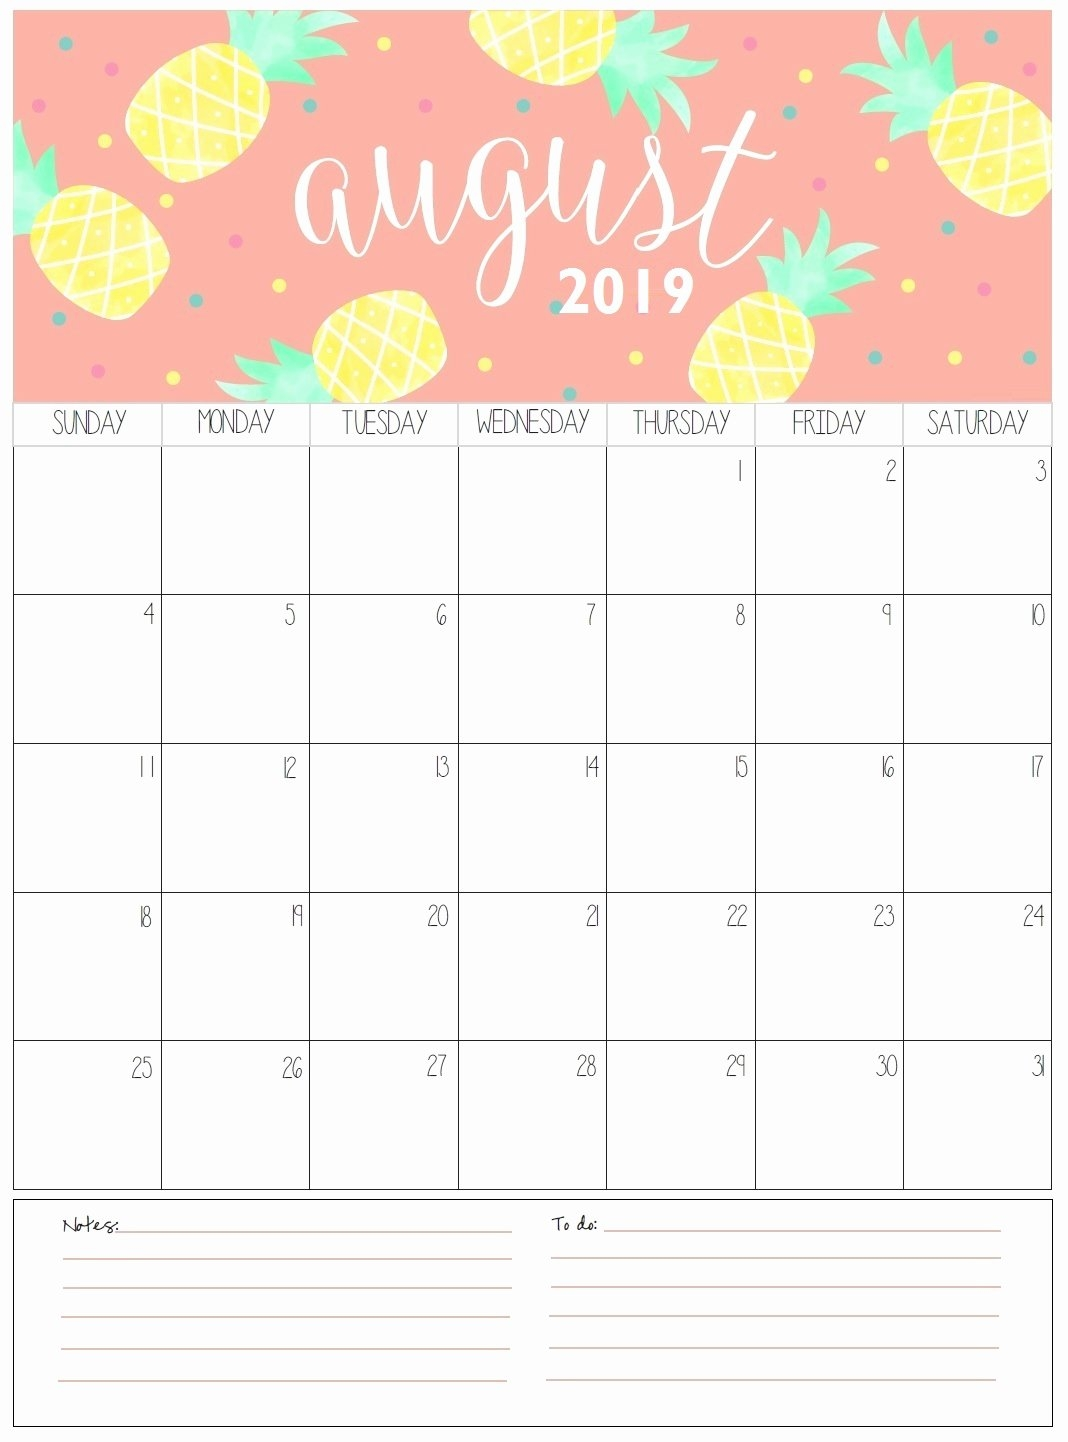 Free Calendar And Holidays - Download Free Calendar, Online Calendar Calendar 2019 Print Free